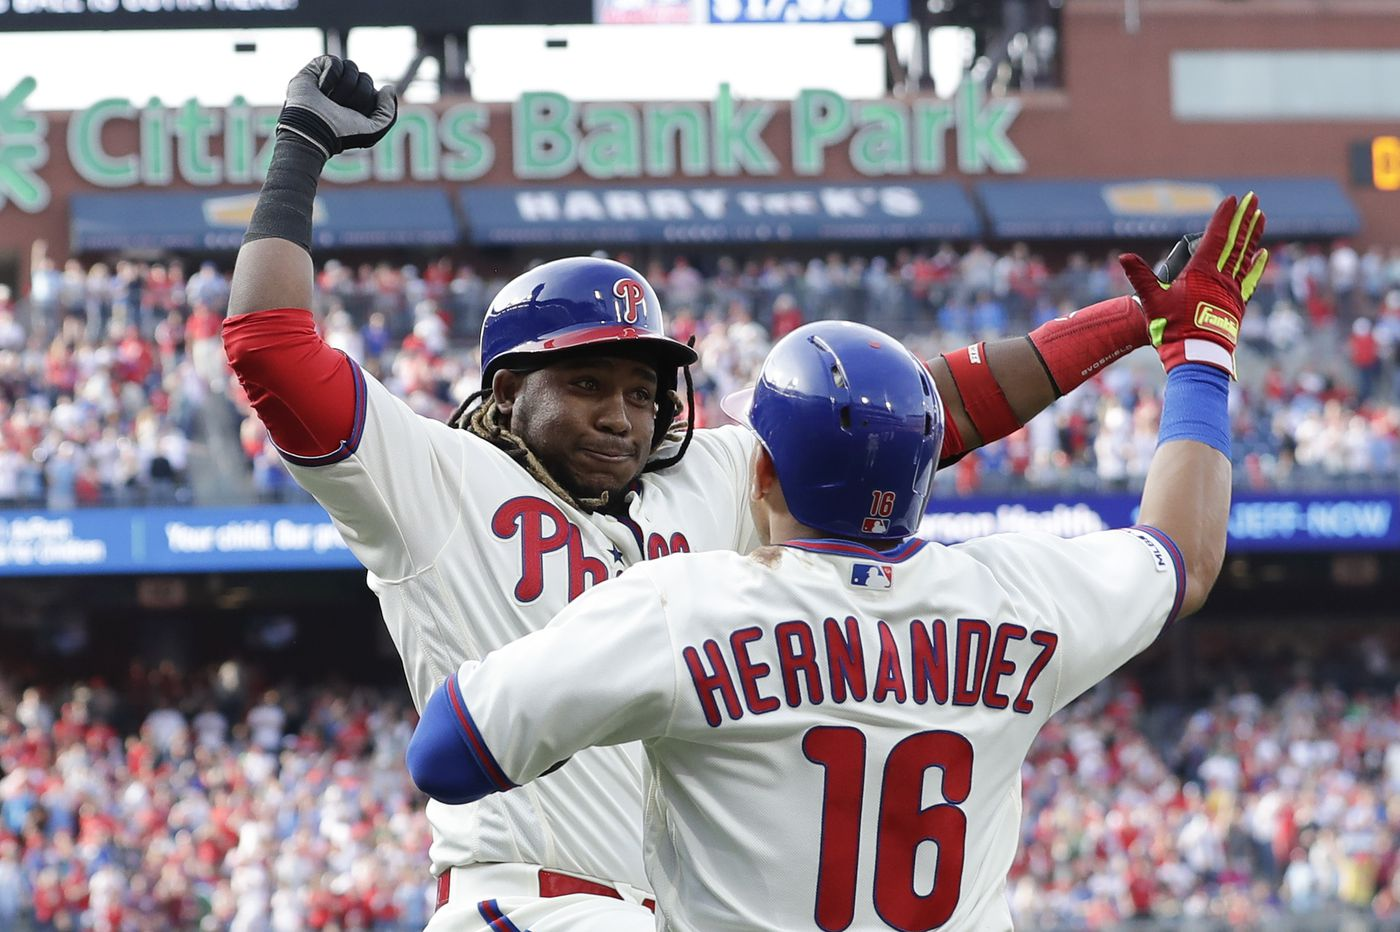 Maikel Franco flourishing in eighth spot of Phillies lineup